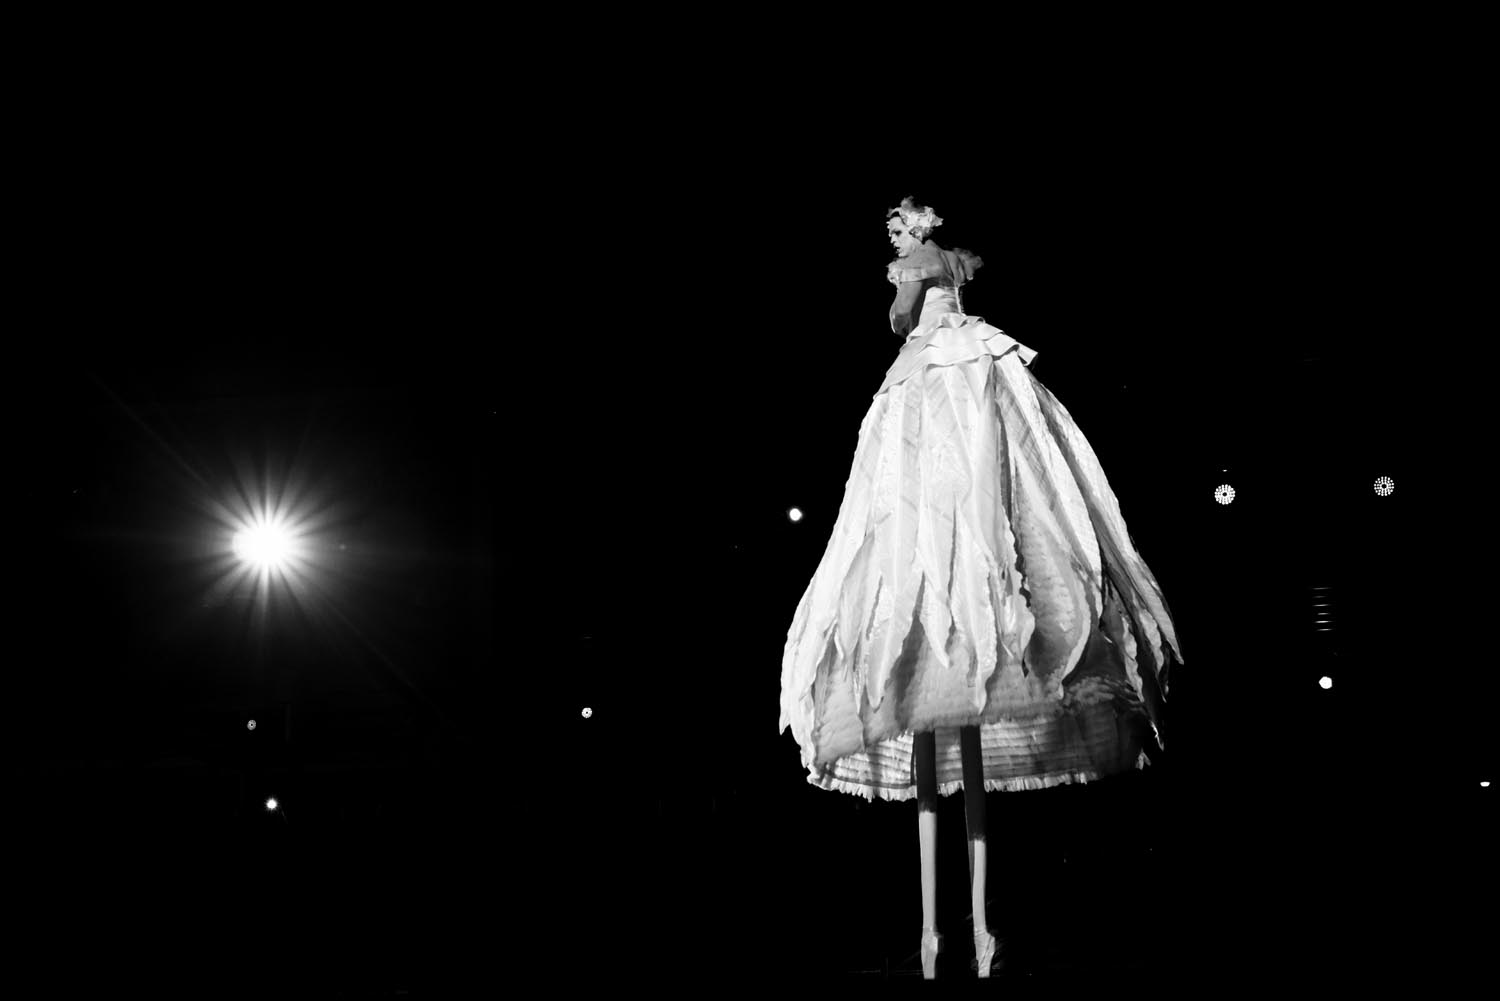 Peter Minshall's Carnival King The Dying Swan. Photo by Jason C. Audain